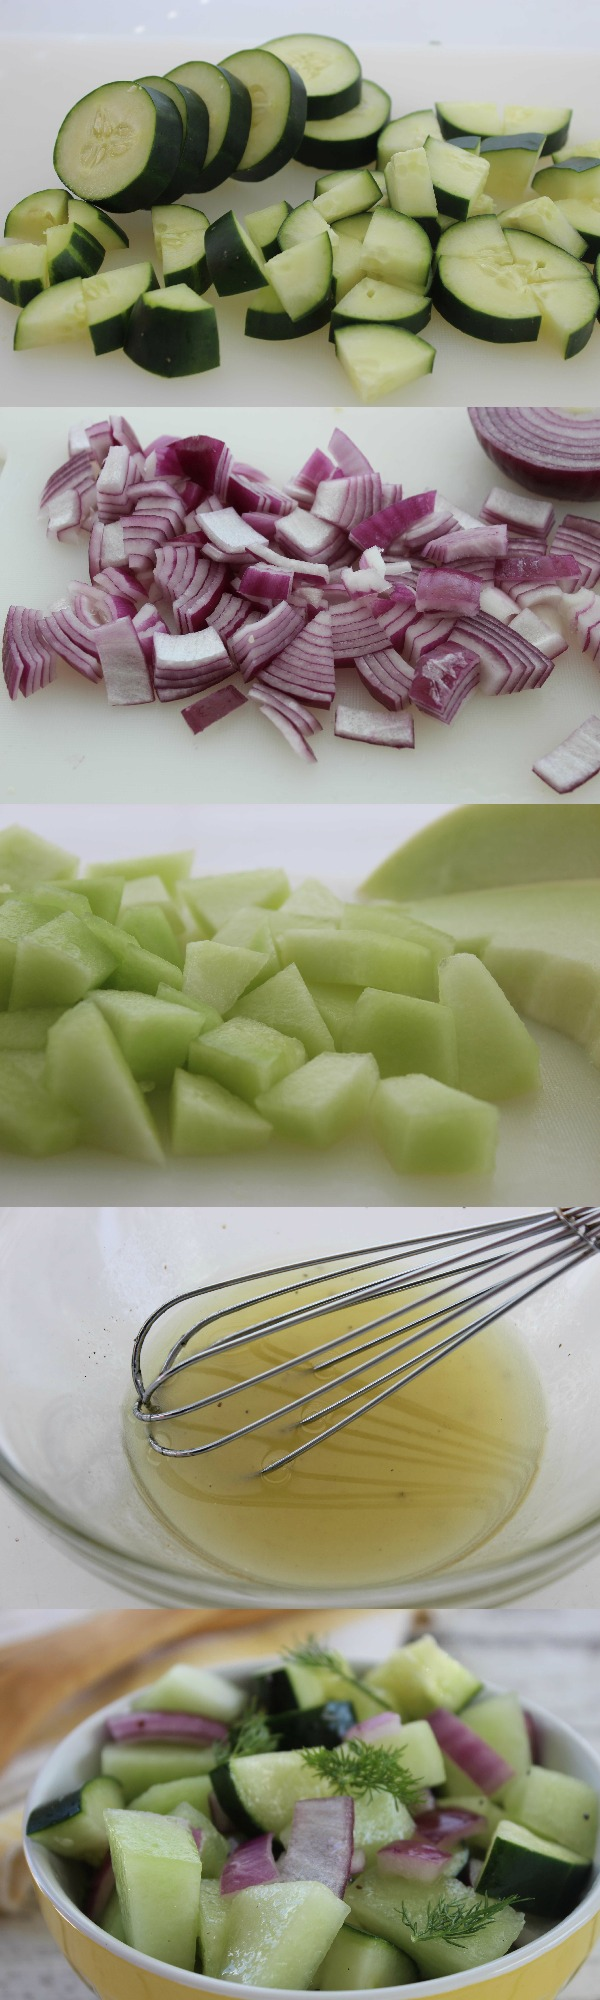 Honeydew Cucumber Salad for Summer Salad